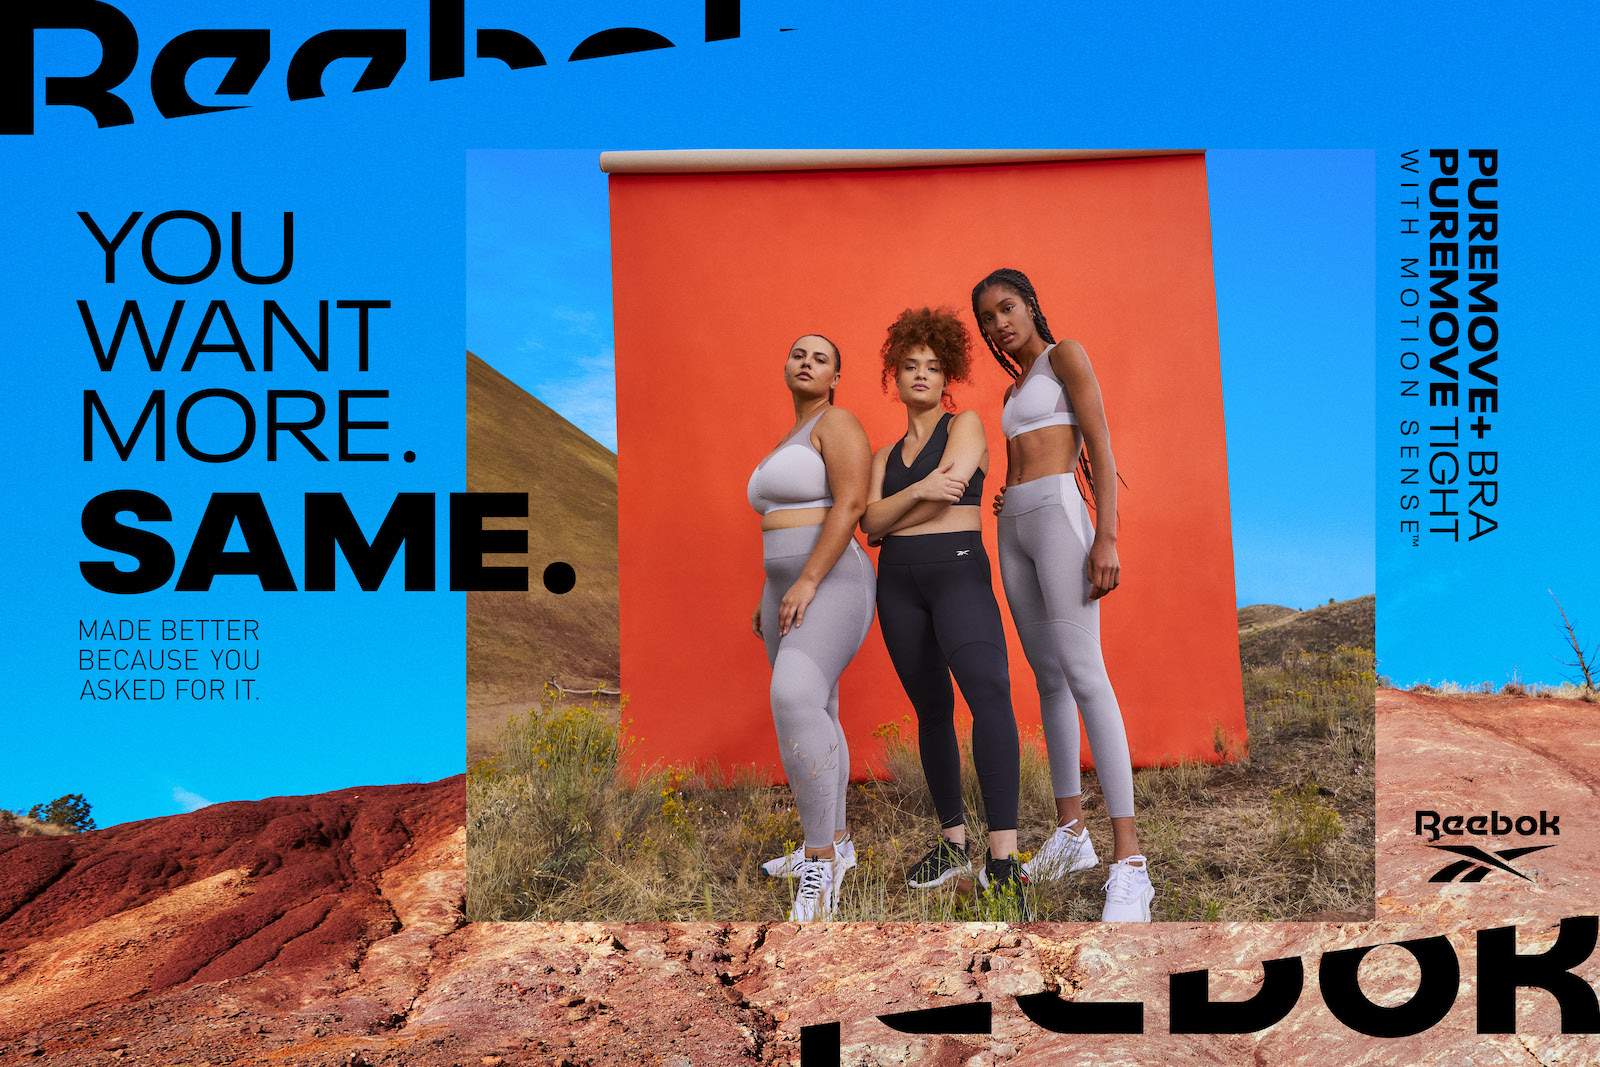 A horizontal example of Reebok PureMove campaign layout, with an image of models against the orange backdrop inset in another image of the red earth and blue sky environment, creating a layered contrast of colors as well as between geometric and organic shapes.